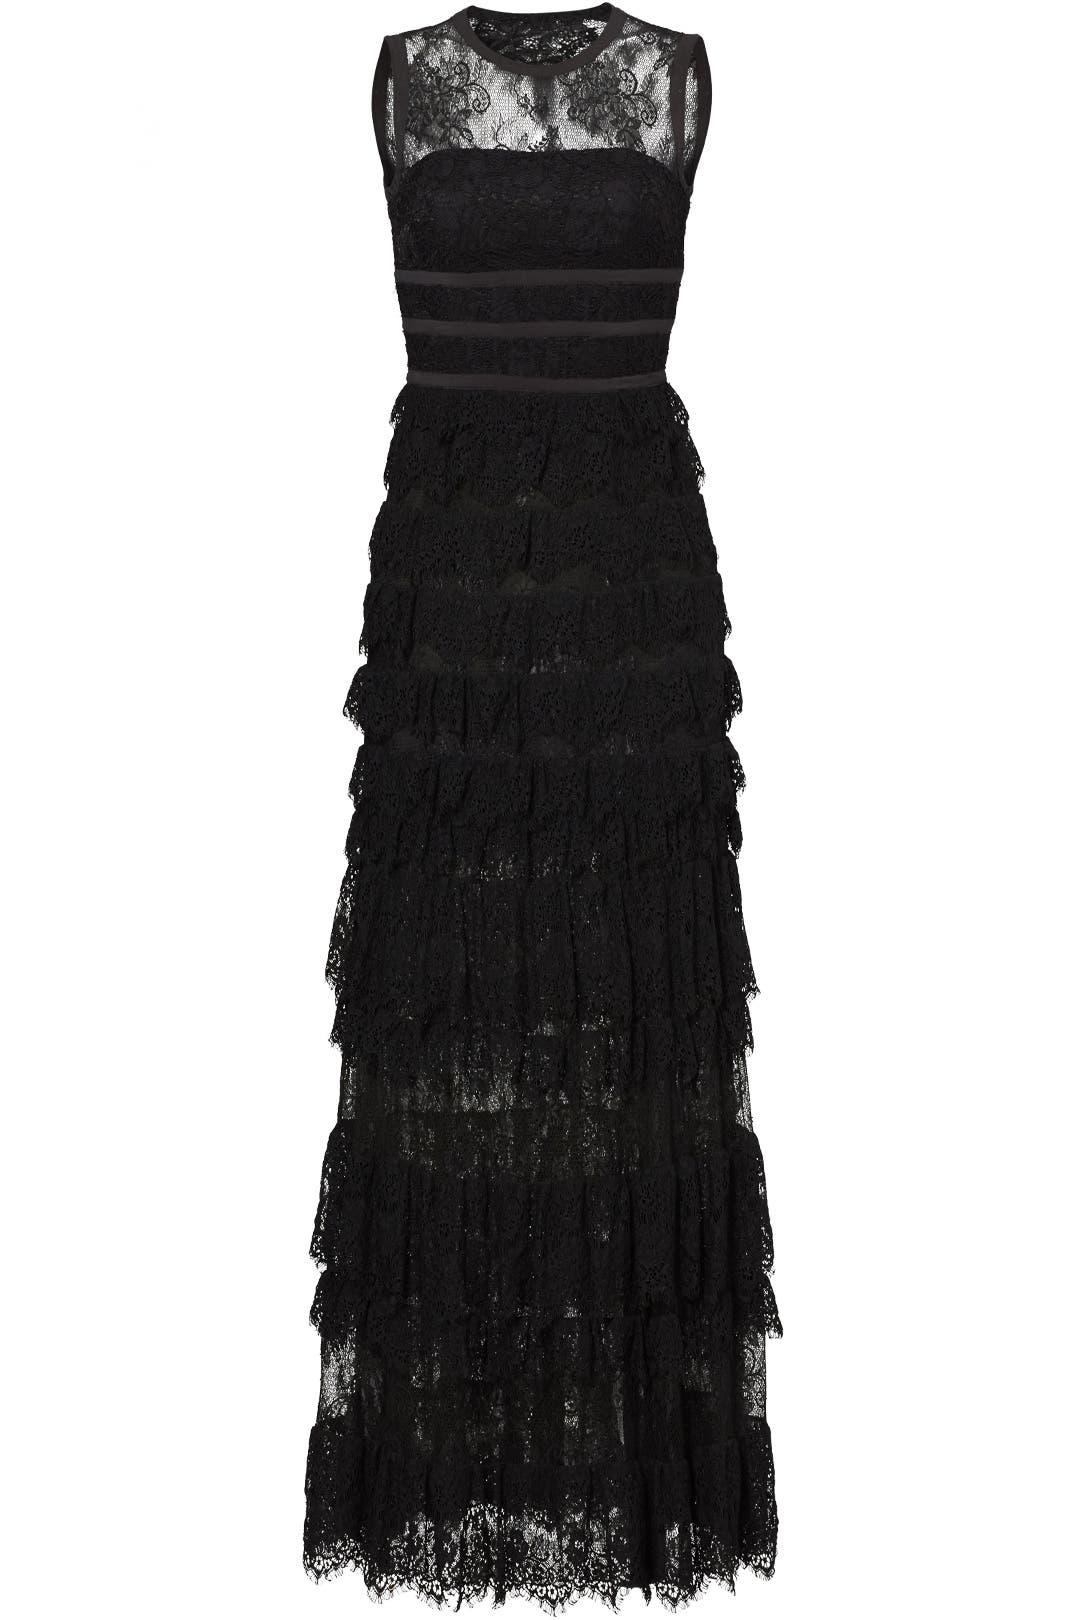 Black Lace Shannon Gown by ML Monique Lhuillier for $80 - $100 ...